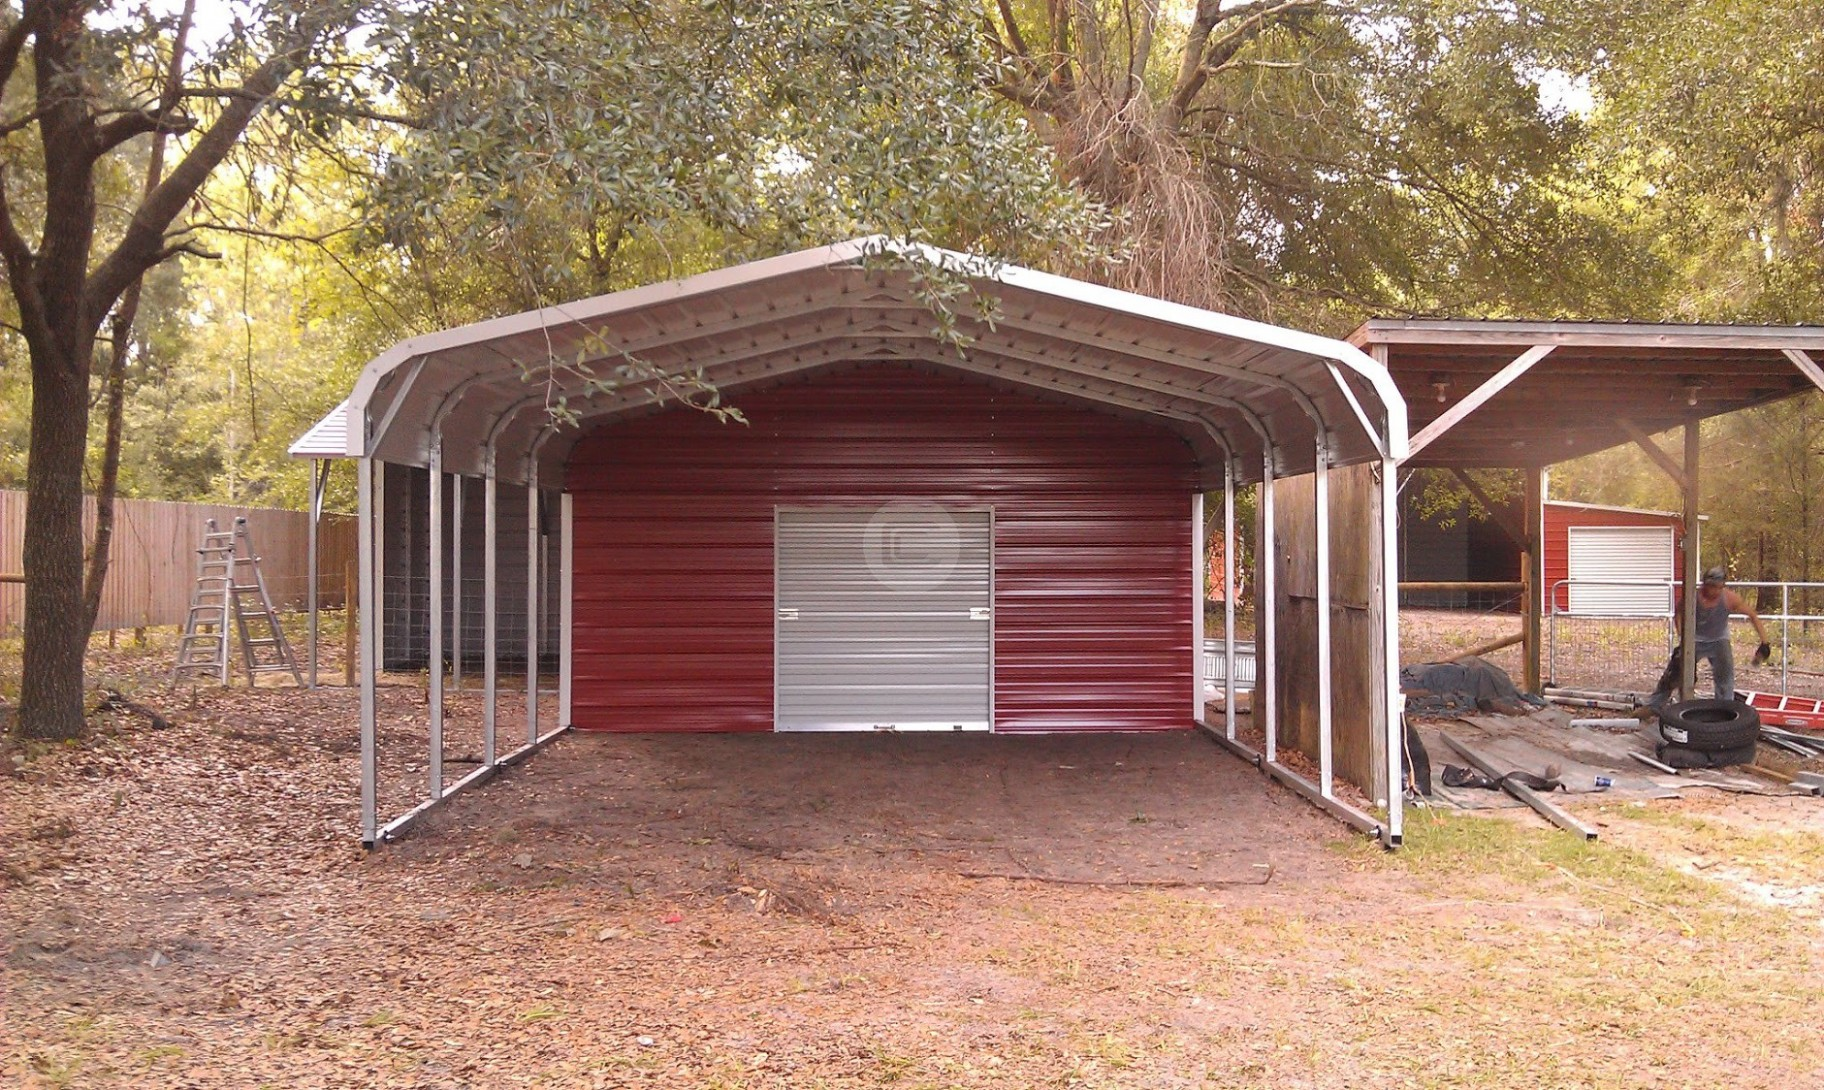 10 Taboos About How To Build A Carport Cover You Should Never Share On Twitter | how to build a carport cover